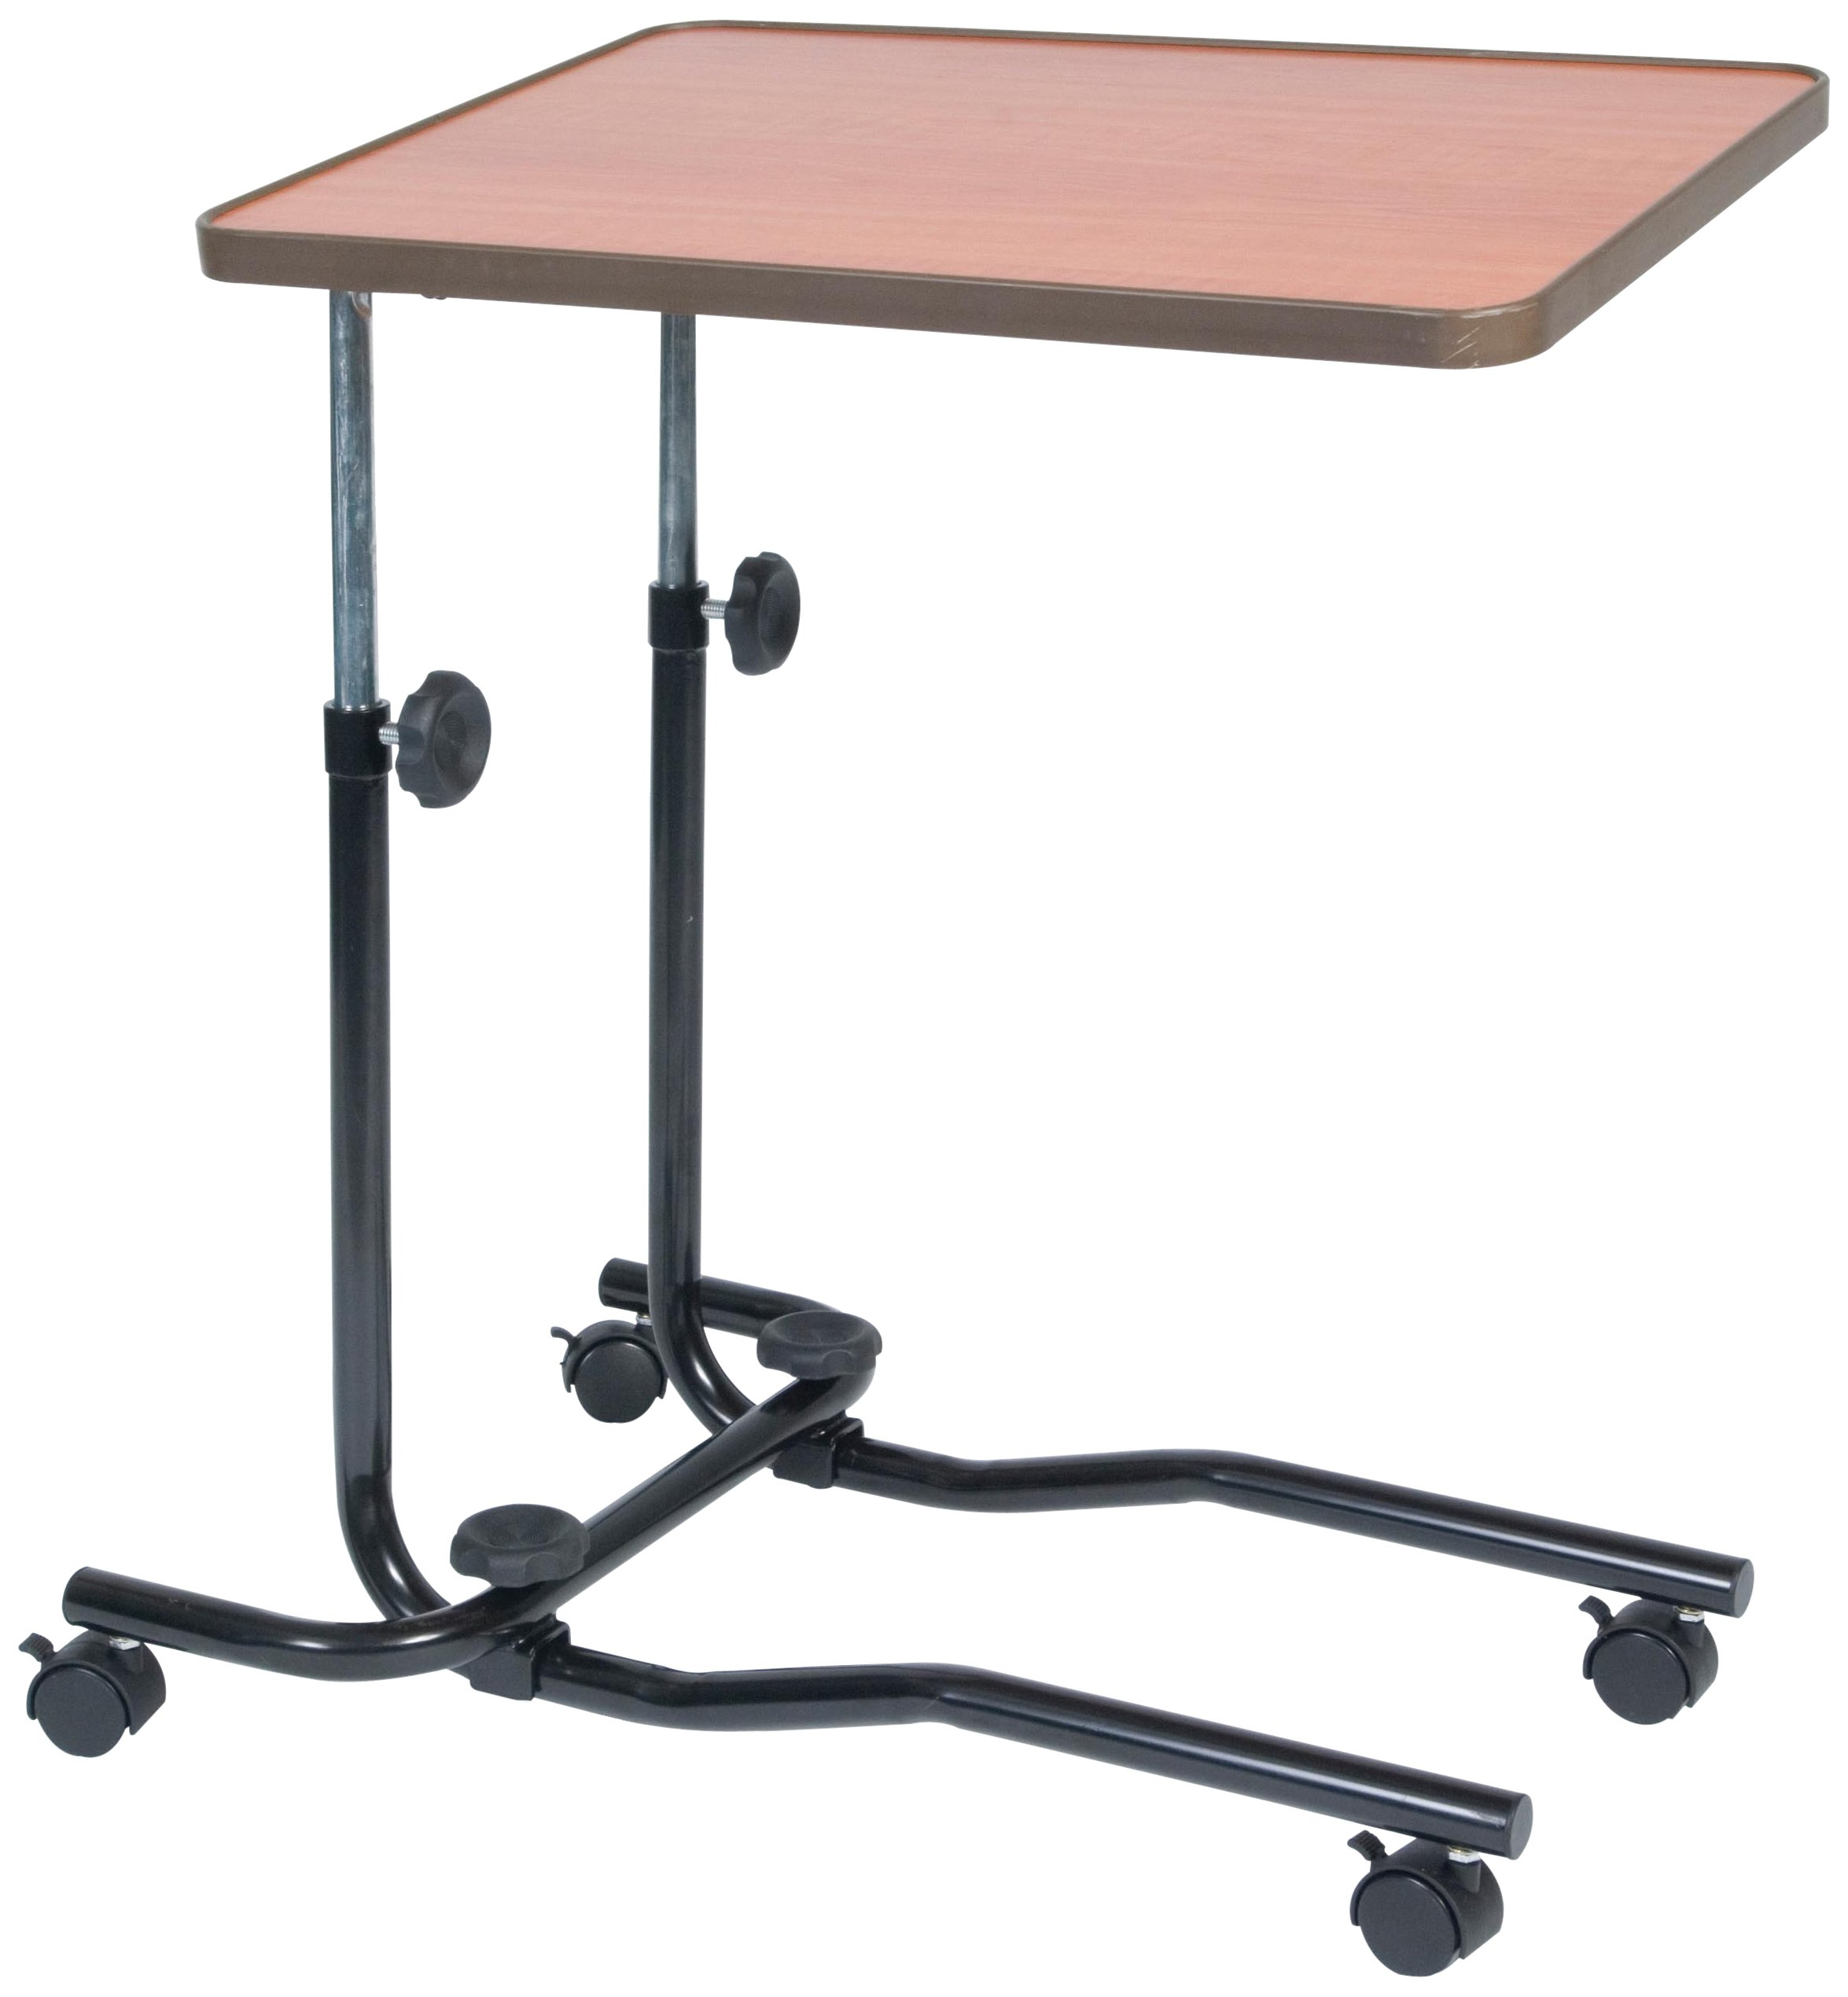 NRS Healthcare M15691 Portable Overbed/Chair Table - Tilting, Adjustable & Wheeled by NRS Healthcare